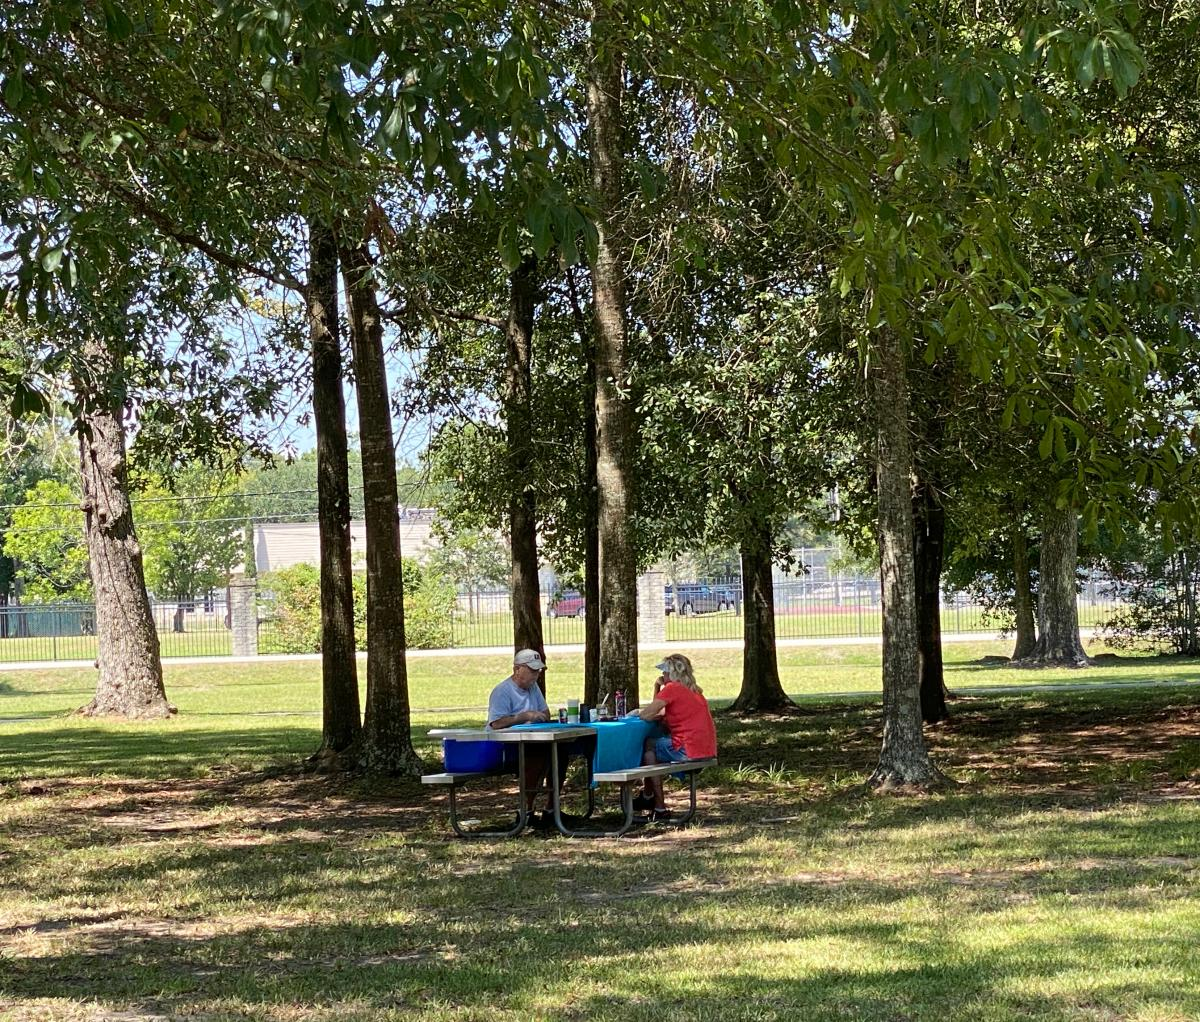 A couple enjoys a leisurely picnic in the shade at Wuthering Heights Park.